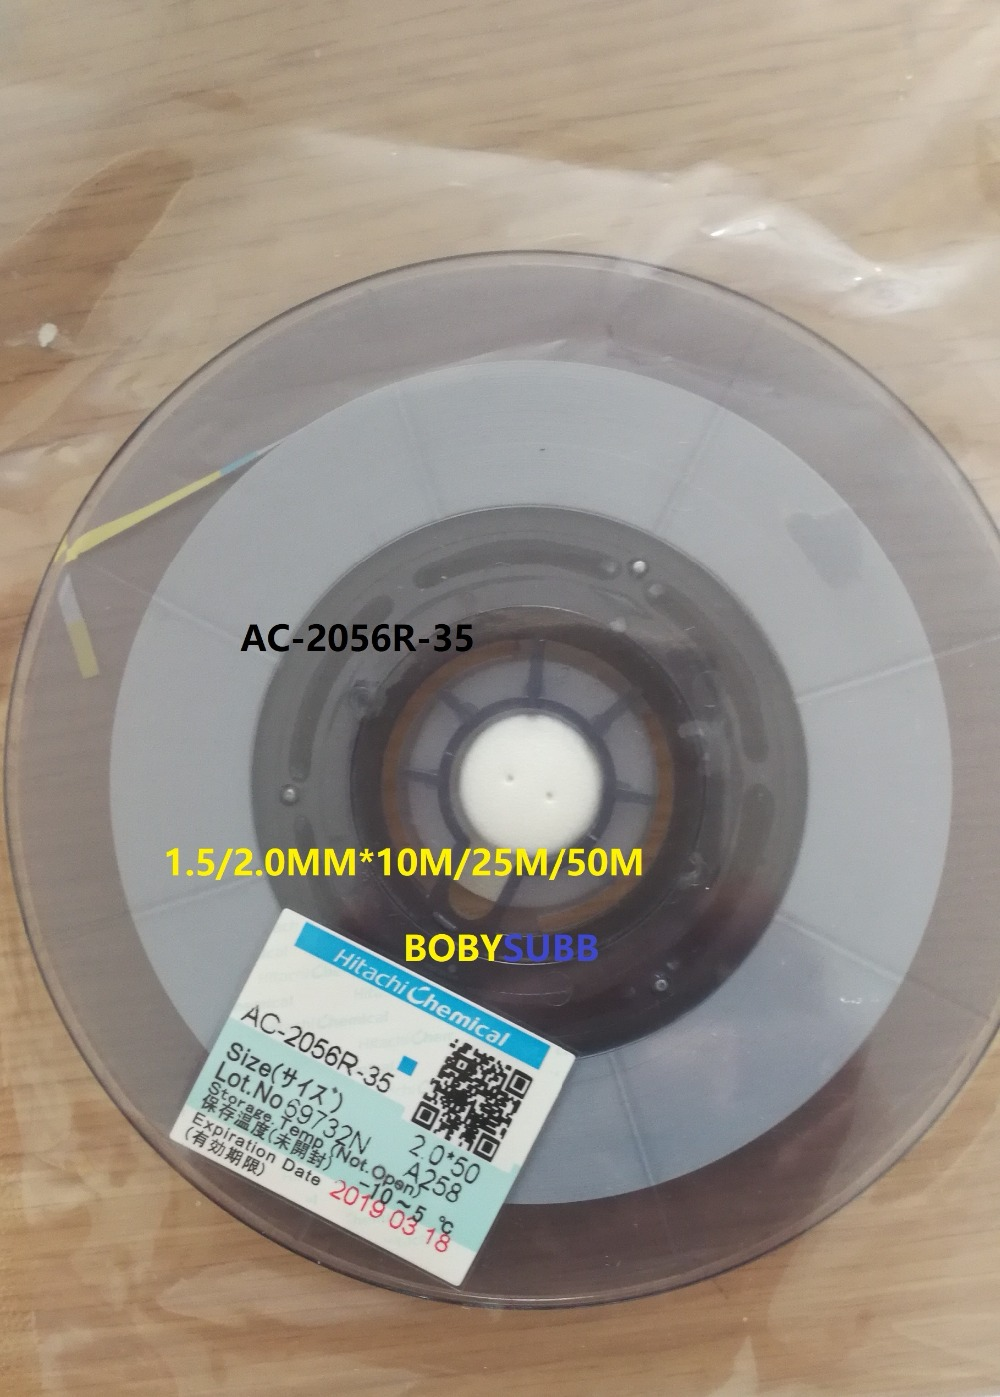 New Date Original ACF AC-2056R-35 AC2056R-35 PCB Repair TAPE 1.5/2.0MM*10M/25M/50M цена